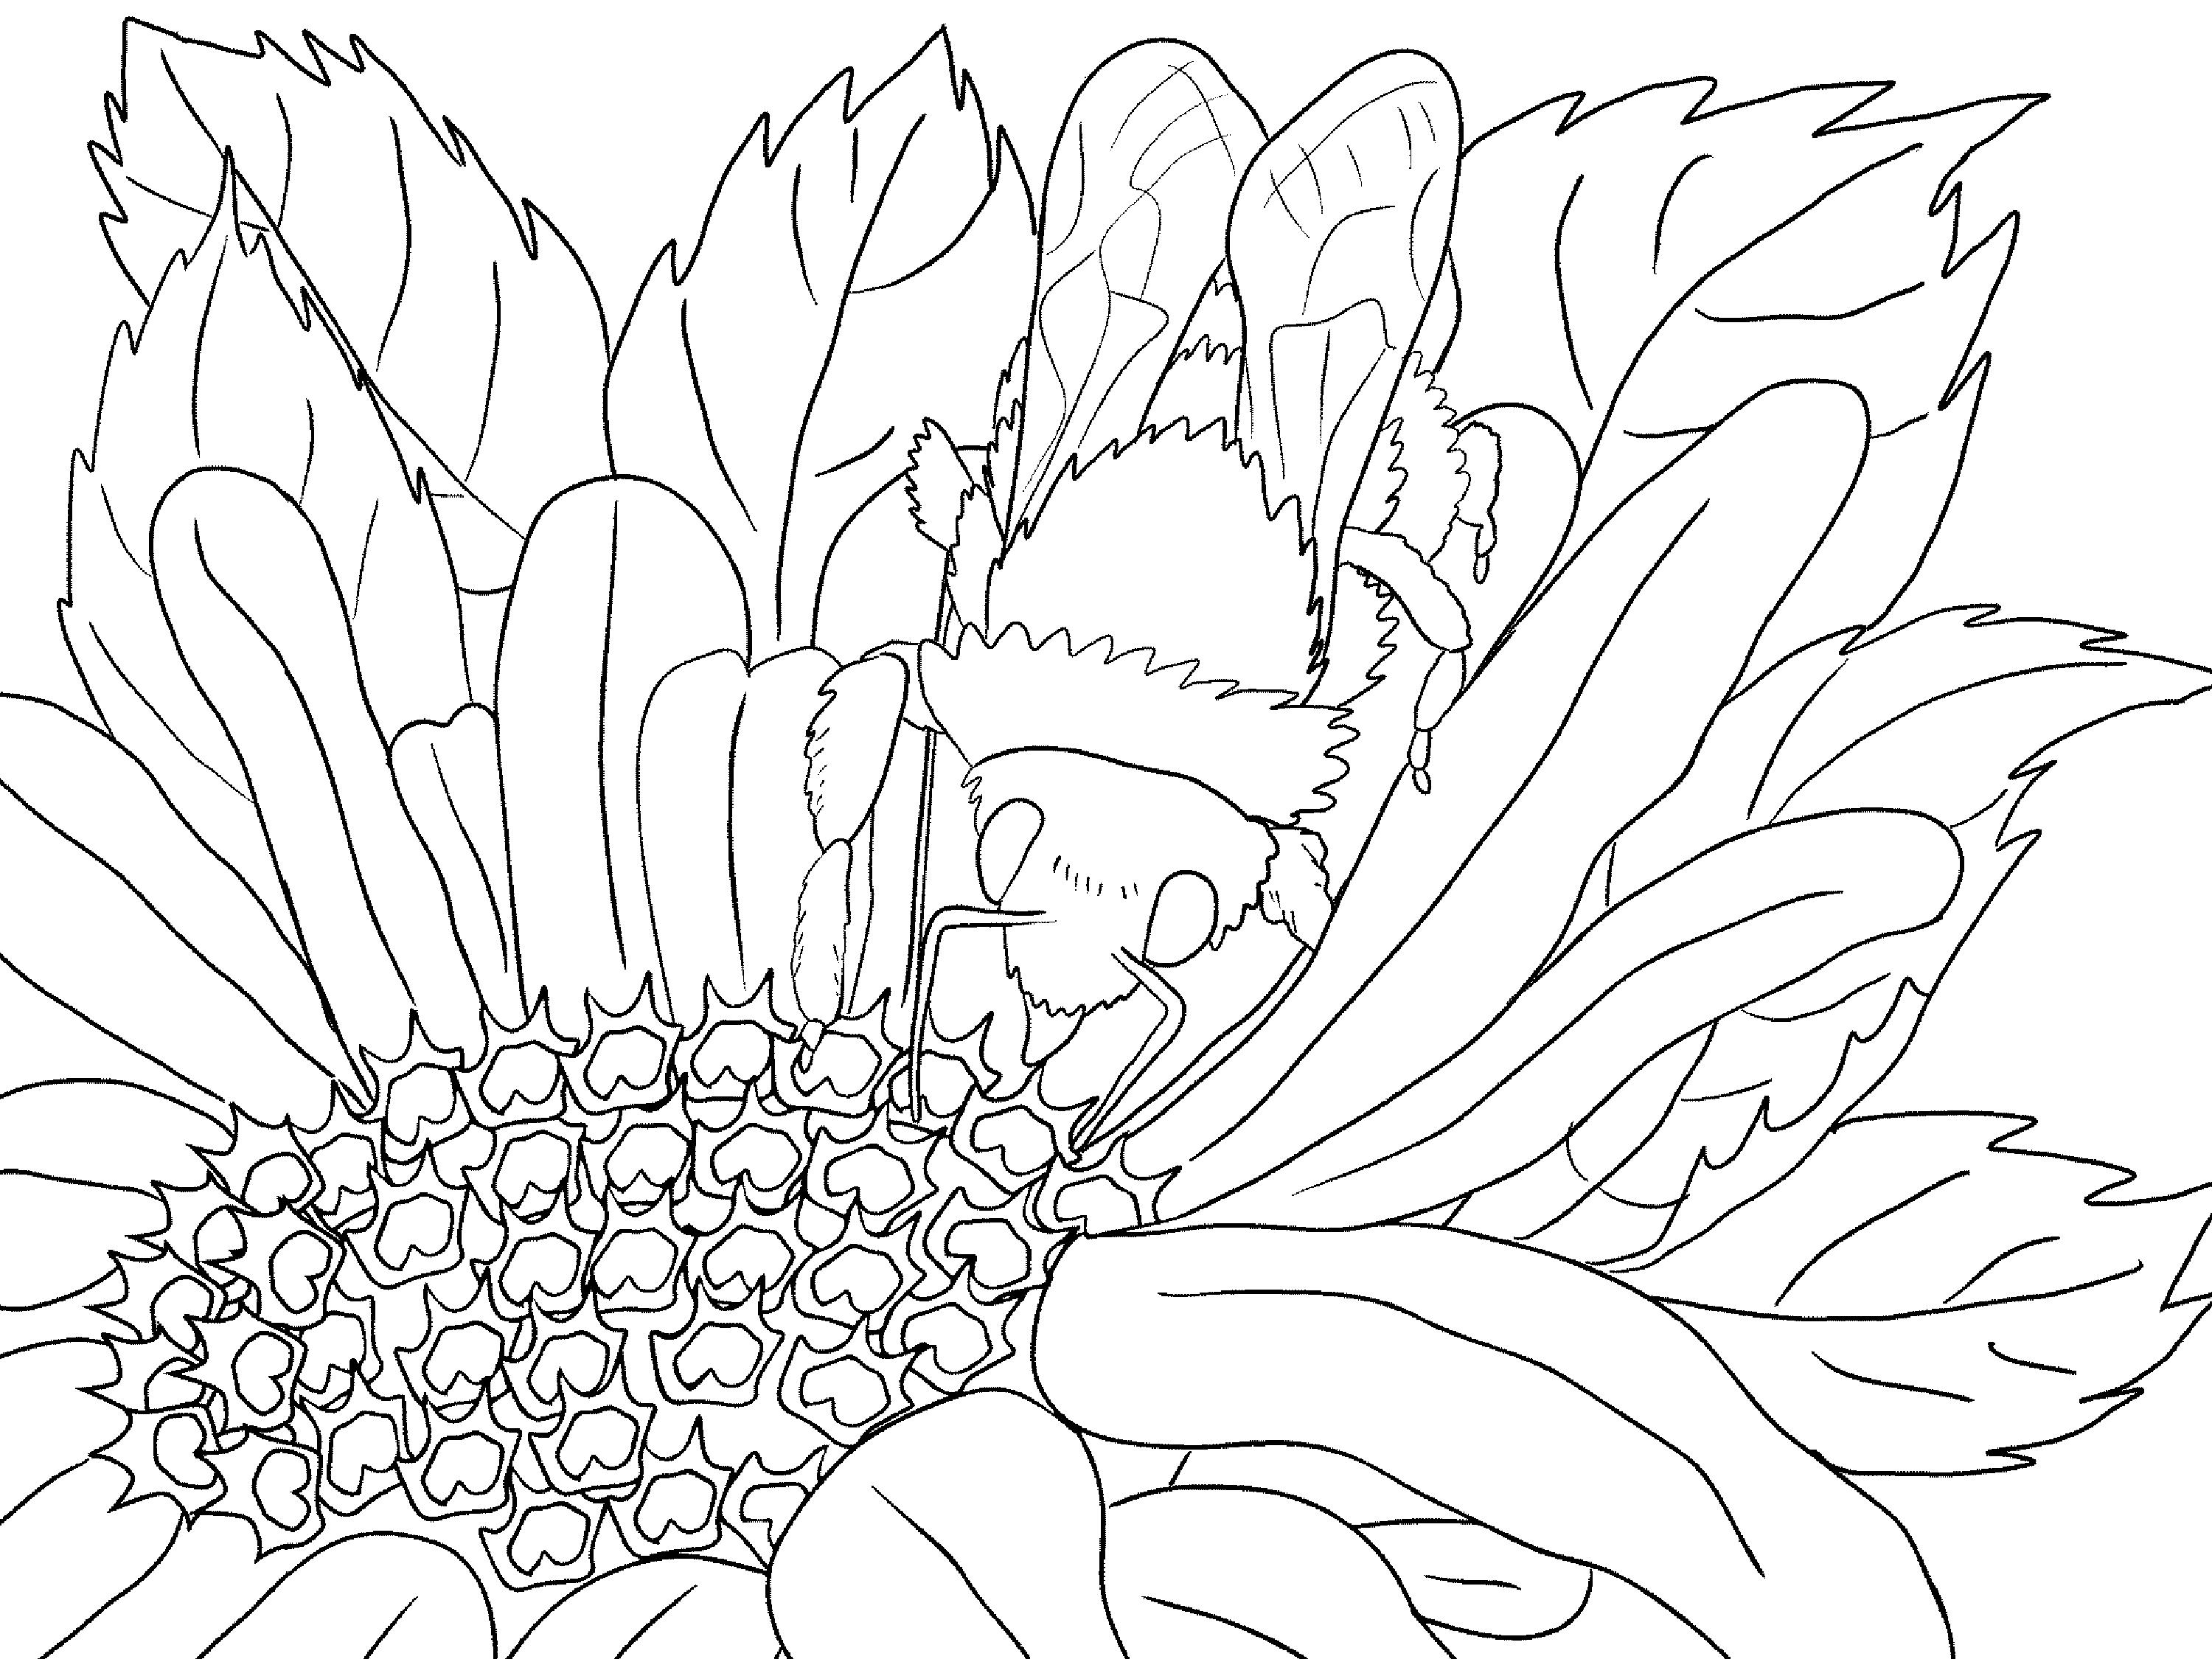 21 Scenery Coloring Pages Compilation | FREE COLORING PAGES